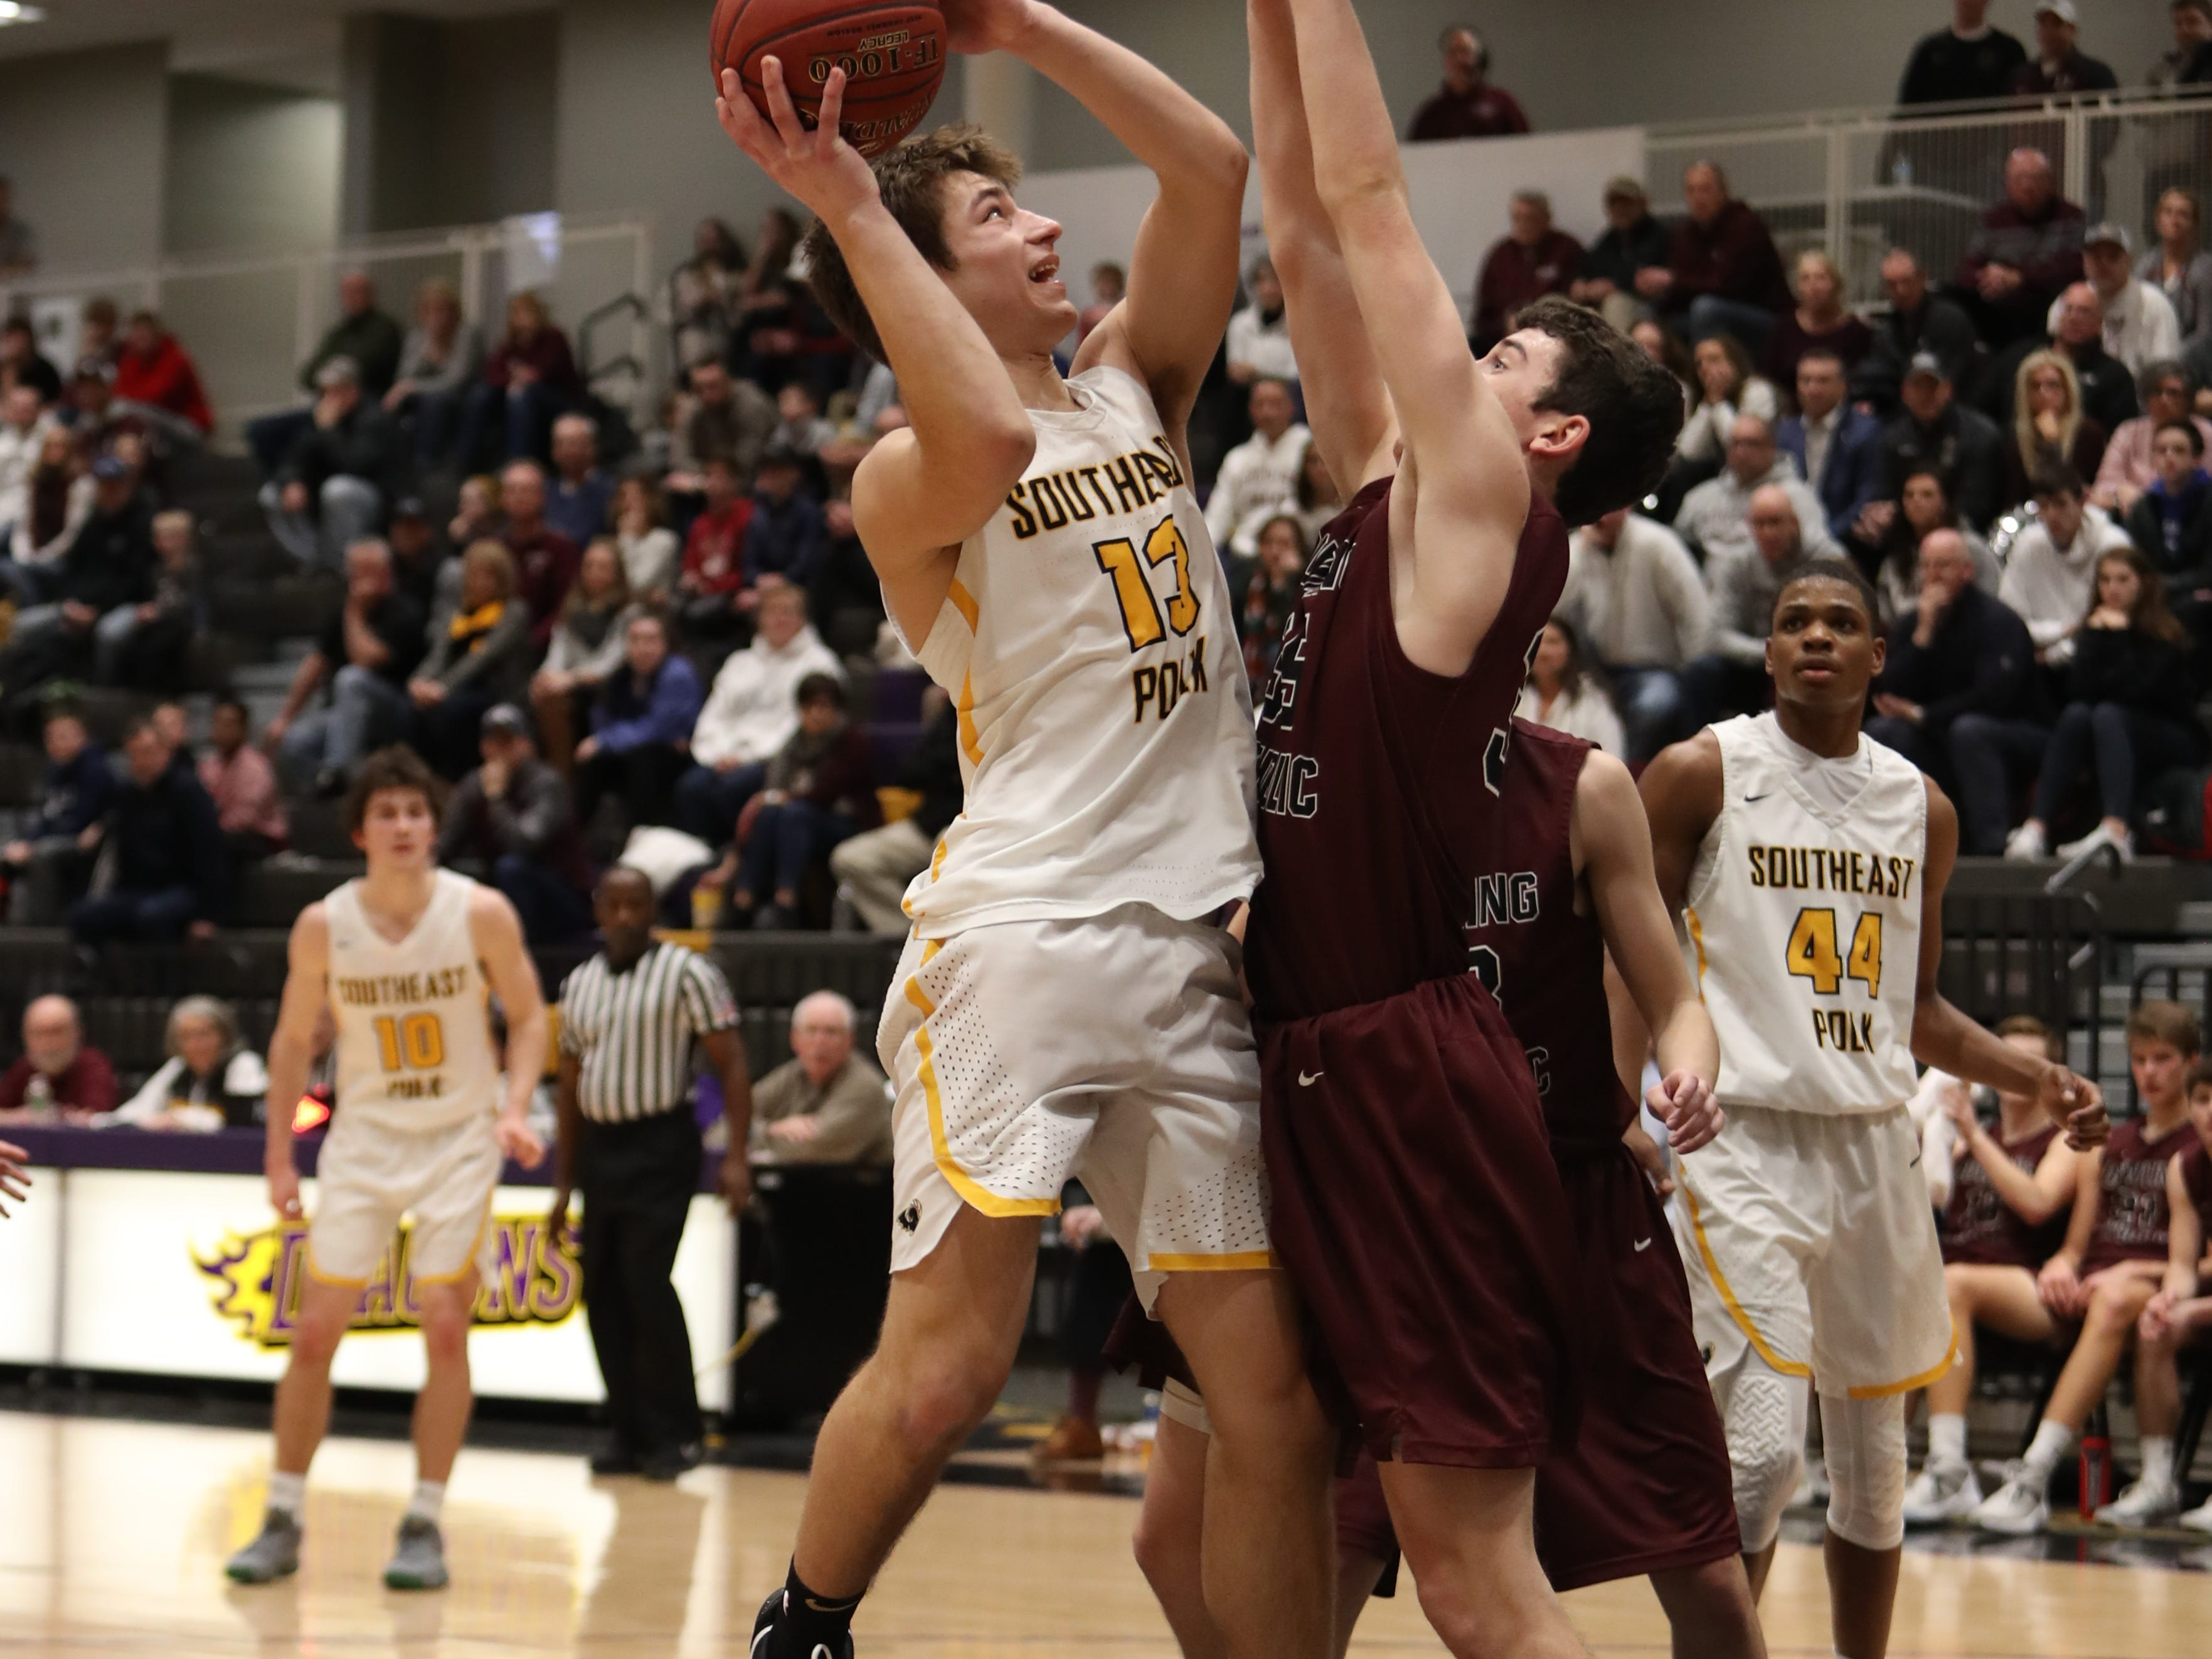 Dowling Catholic's Andrew Lentsch (35) defends the shot of Southeast Polk's  Dominic Caggiano (13) during their game at Johnston High School in Johnston, Iowa, on Tuesday, Feb. 26, 2019. Dowling won the game 44-40 to advance to state.